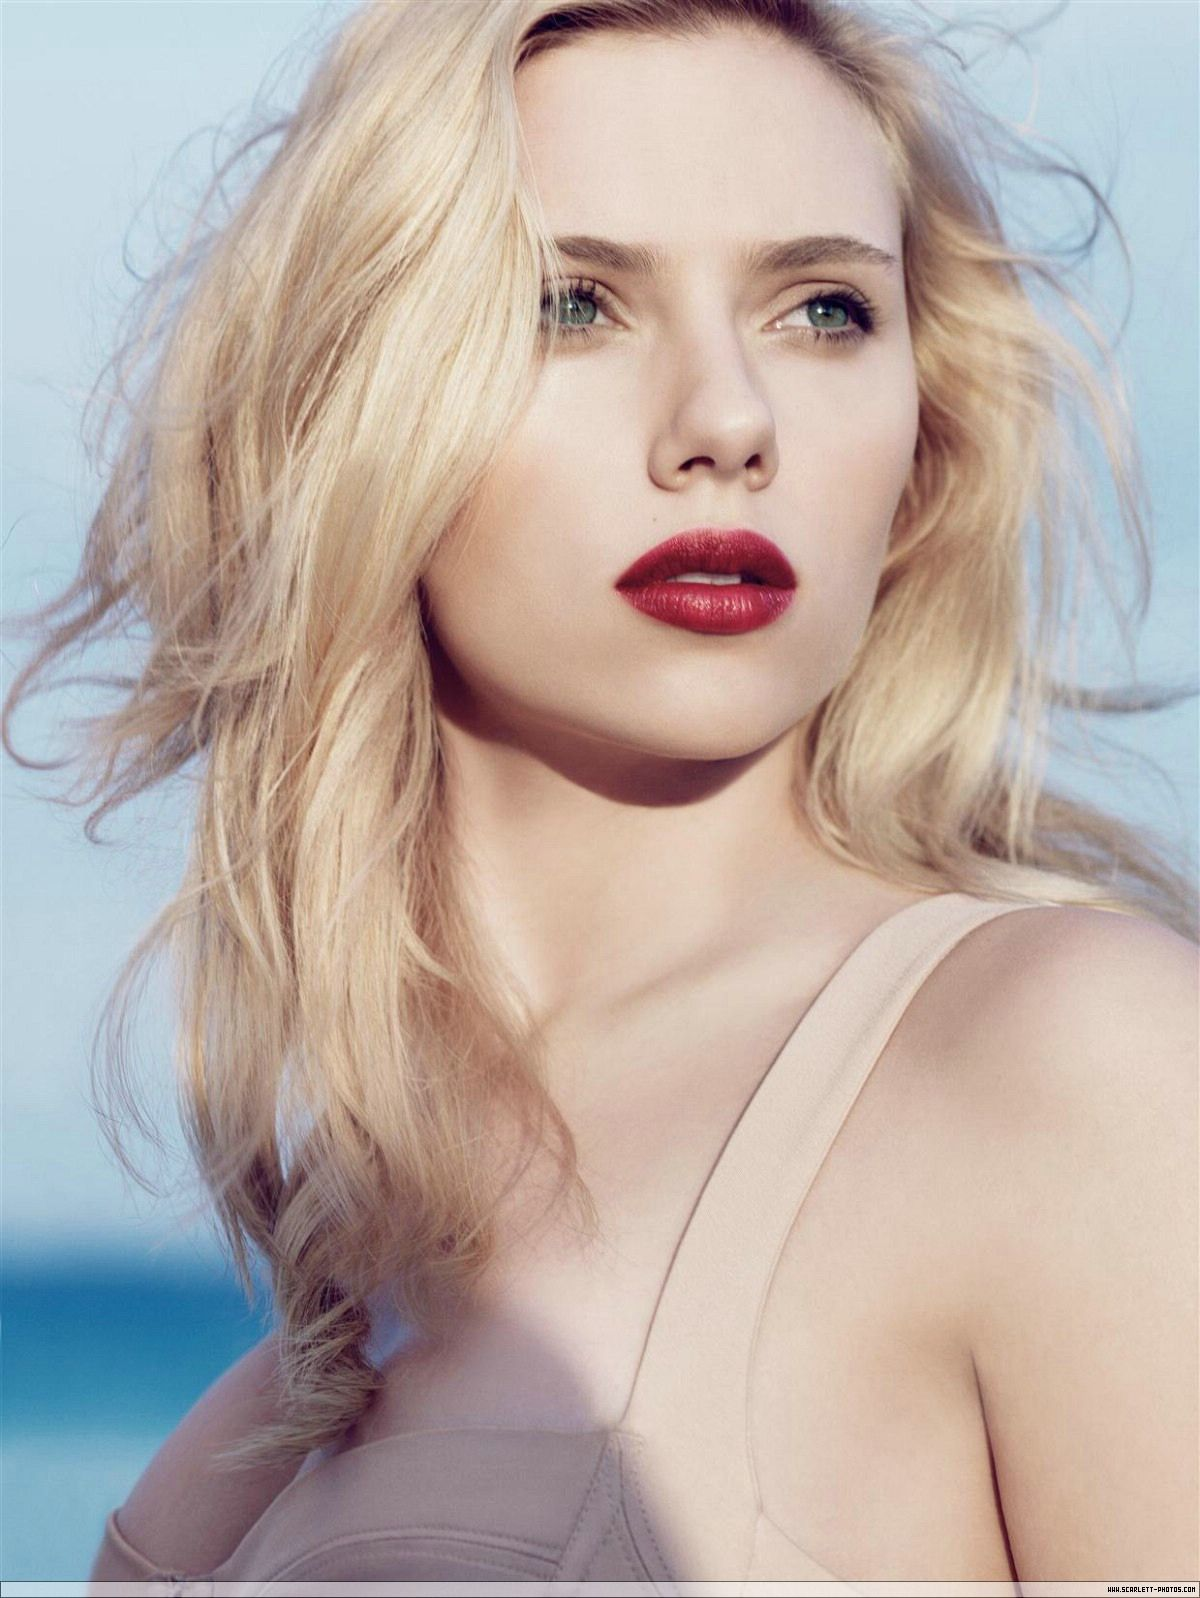 Scarlett Johansson Blonde Blue Eyes And Red Lips With Simple